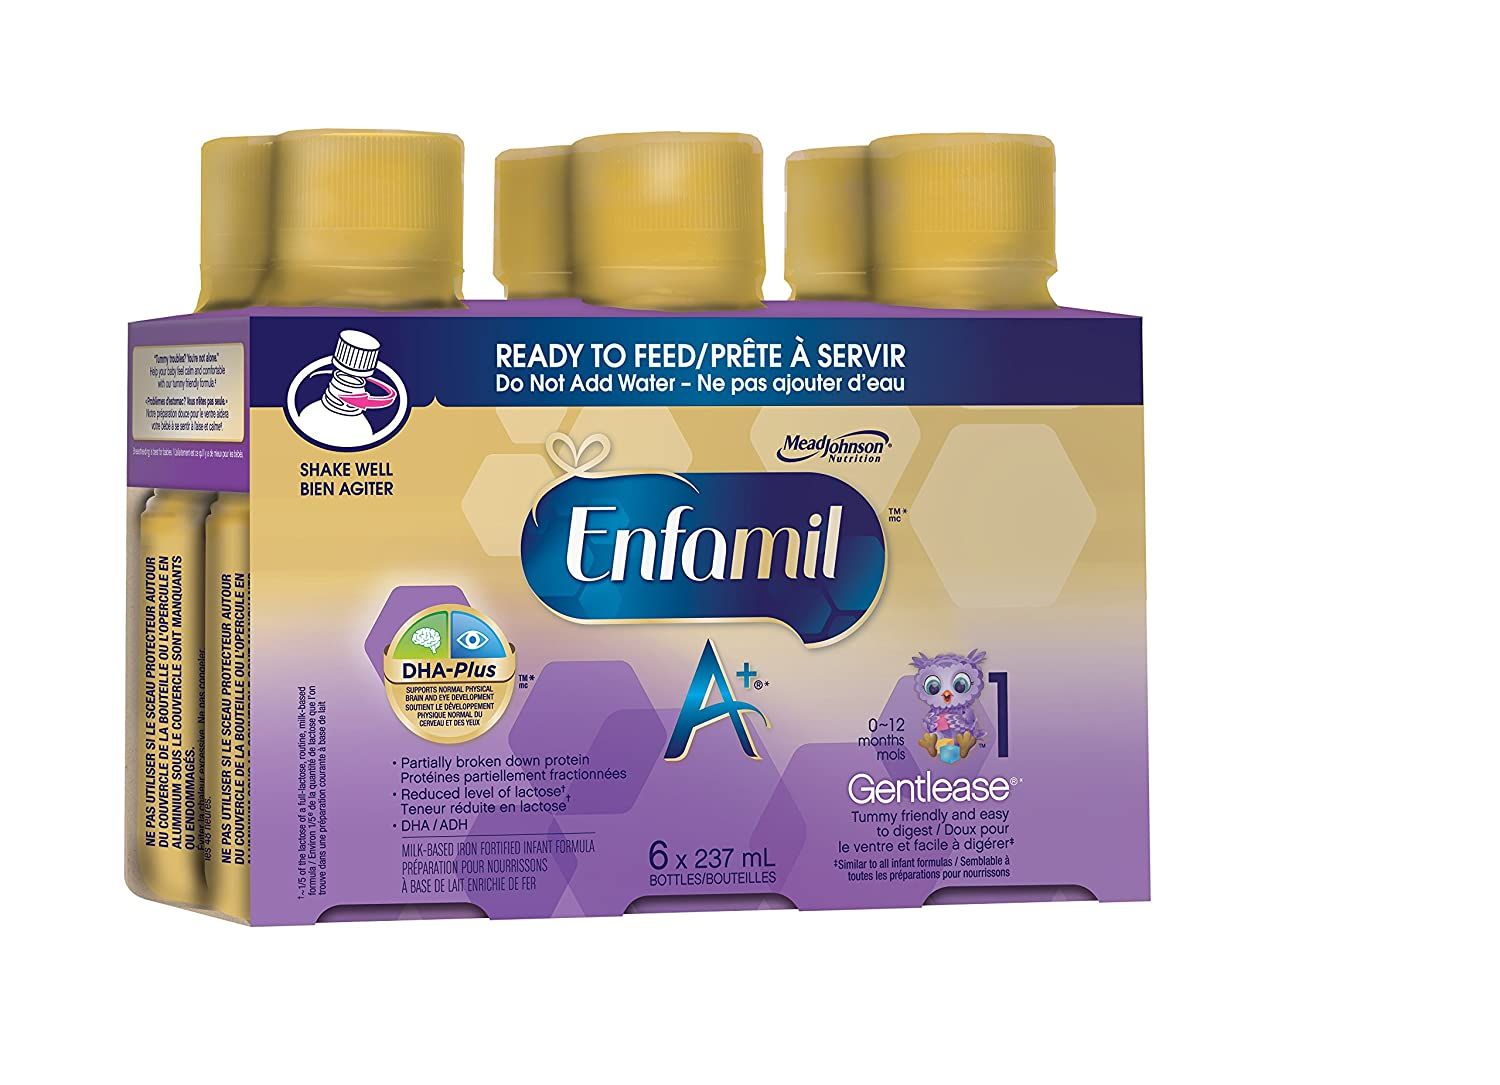 Enfamil A+ Gentlease Infant Formula, Ready to Feed Bottles, 237mL, 6 pack Mead Johnson Nutrition